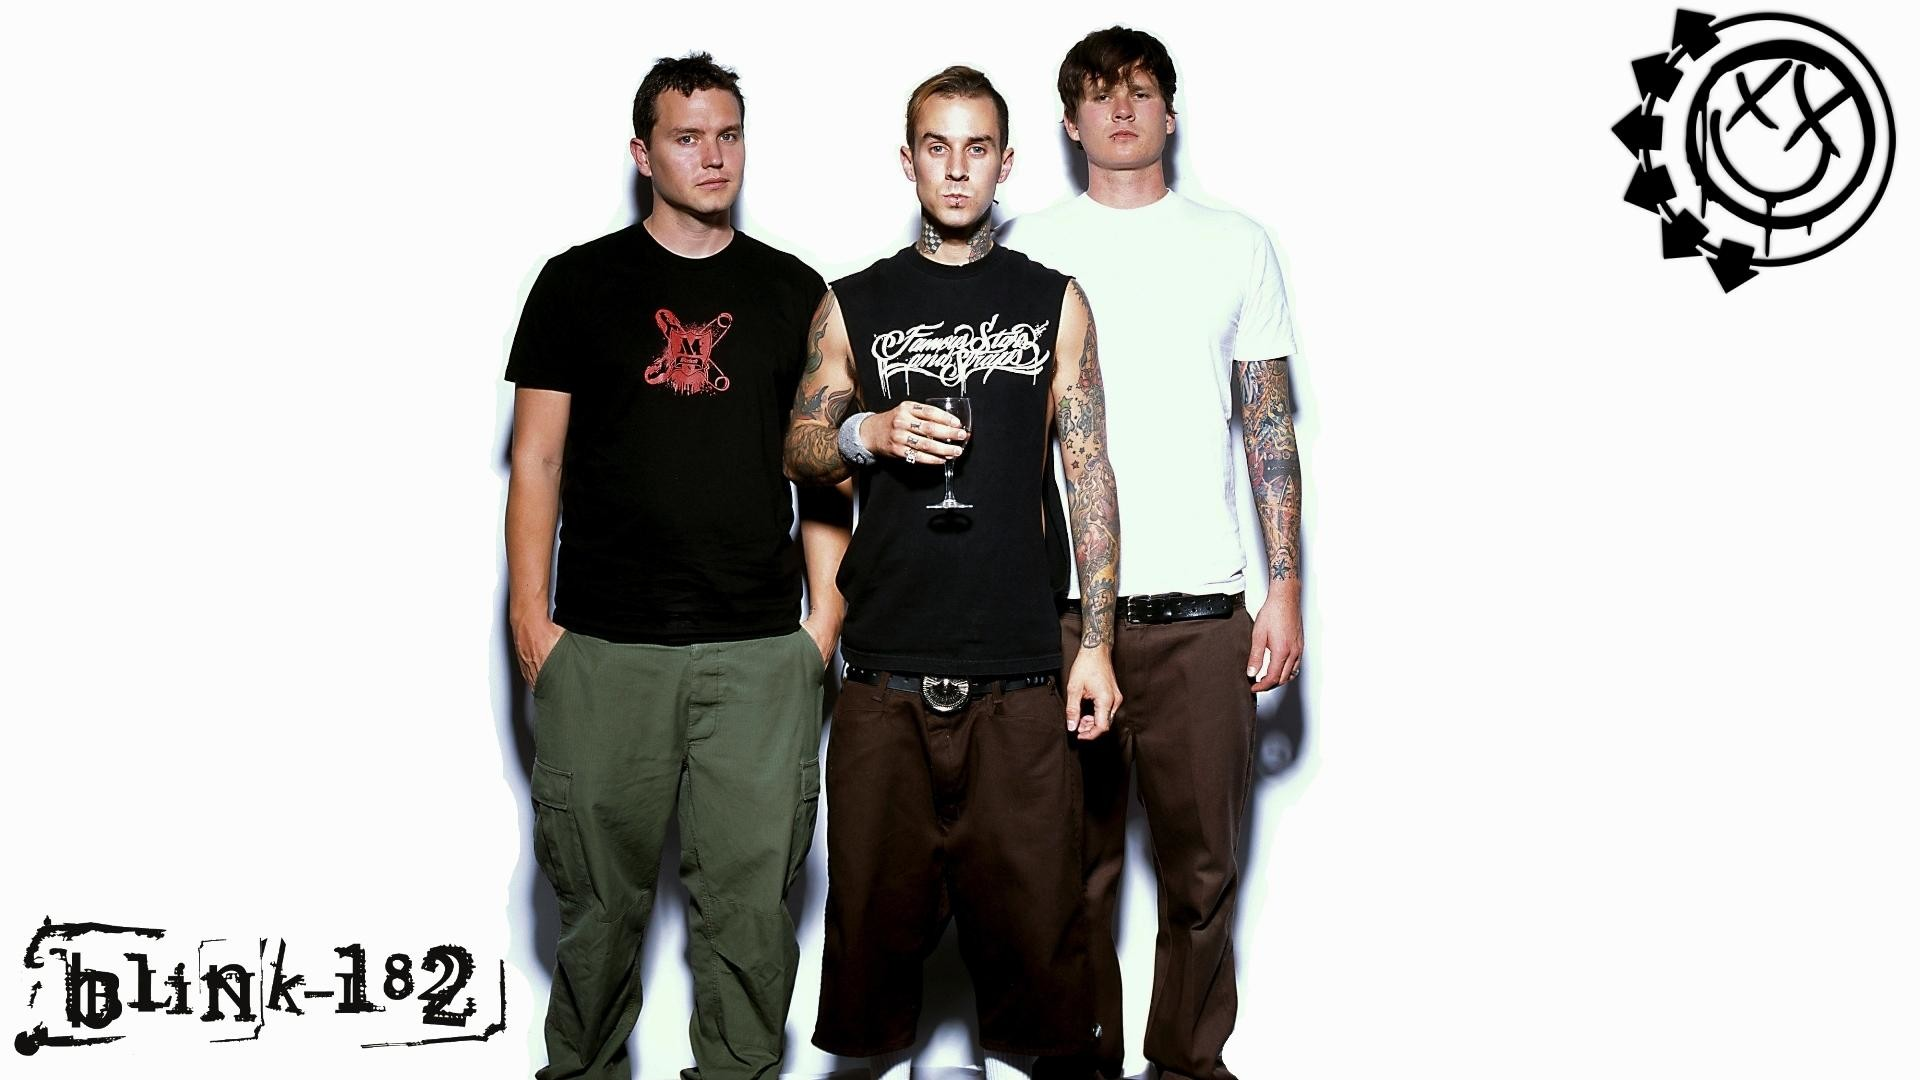 1920x1080 wallpaper.wiki-Blink-182-Desktop-Background-PIC-WPE0010047